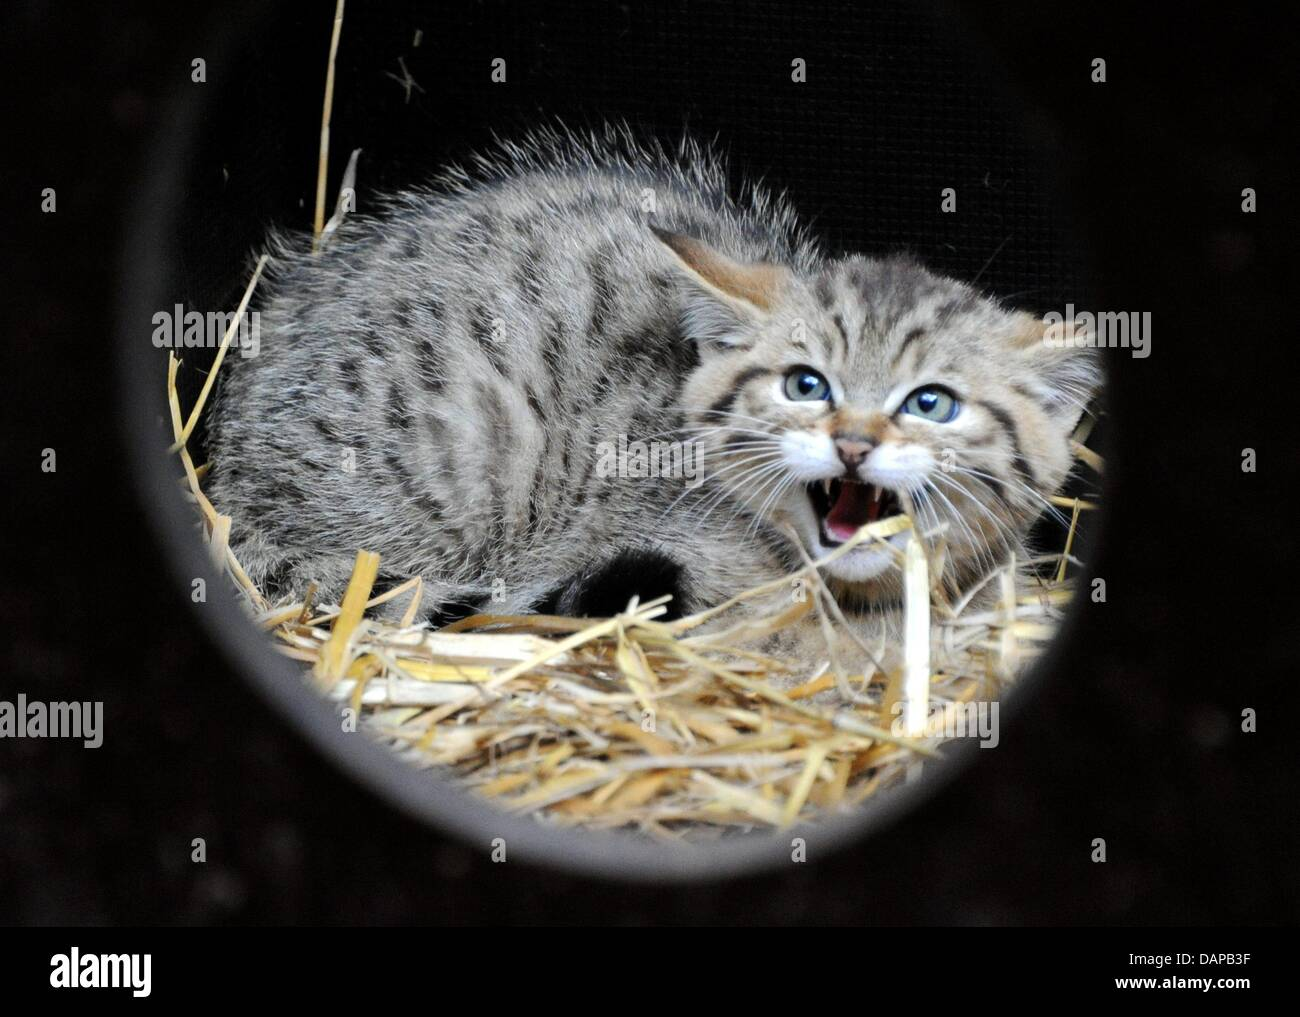 Hisses Stockfotos & Hisses Bilder - Alamy